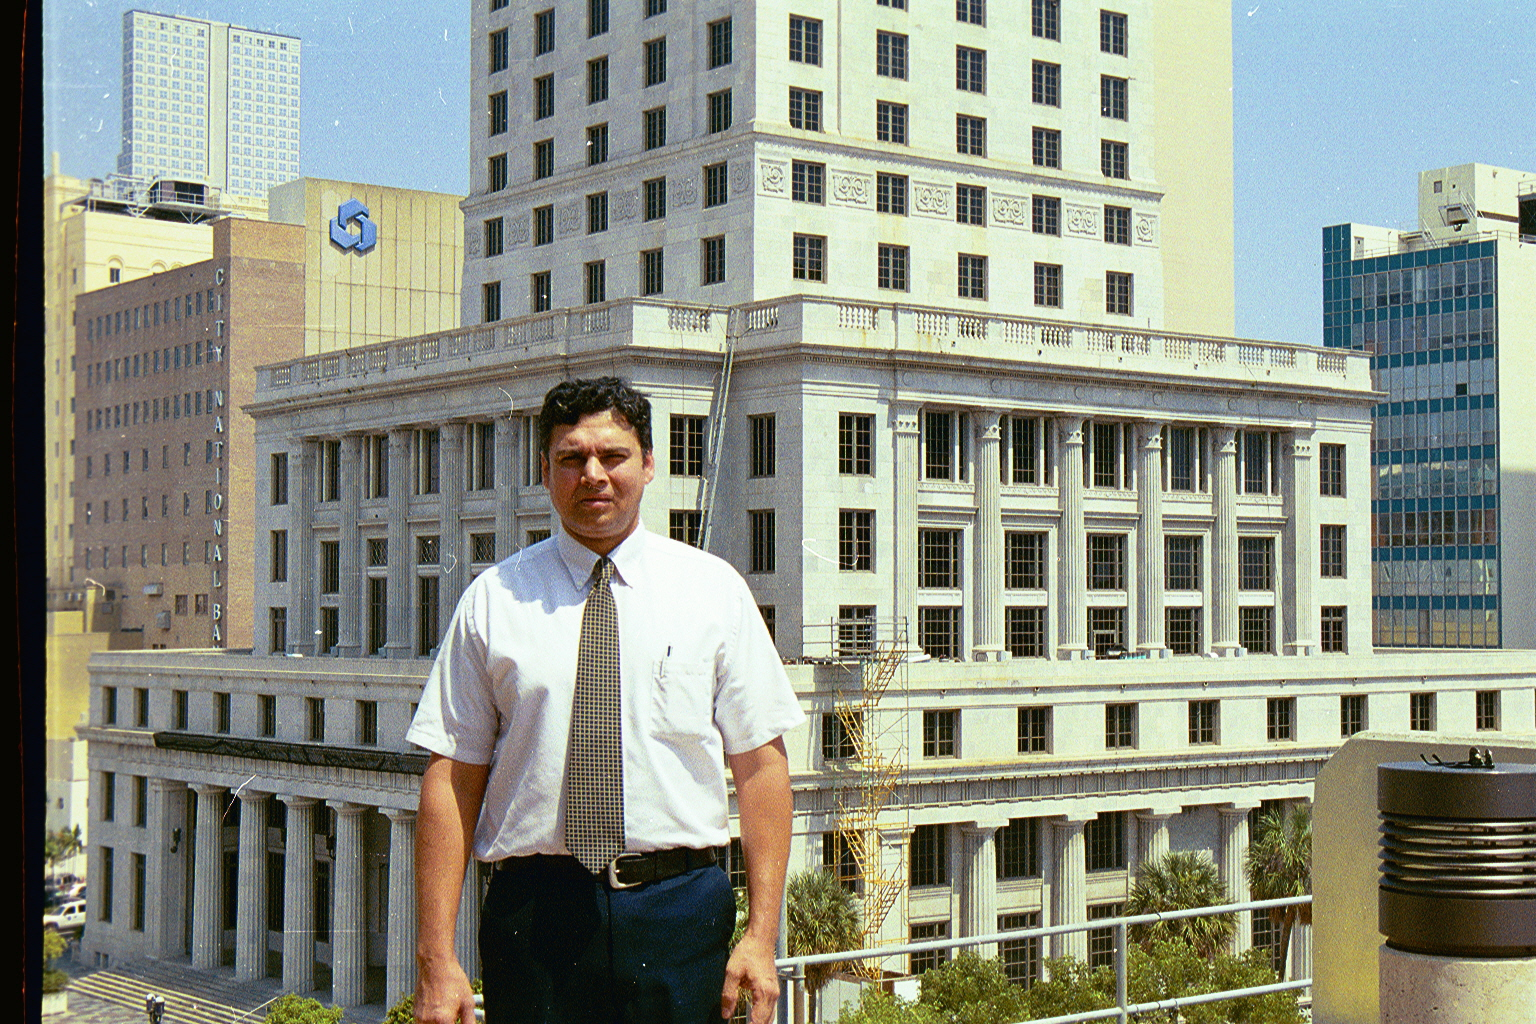 Click to Enlarge - Another picture of myself in front of the Federal Courts building in Miami, Florida